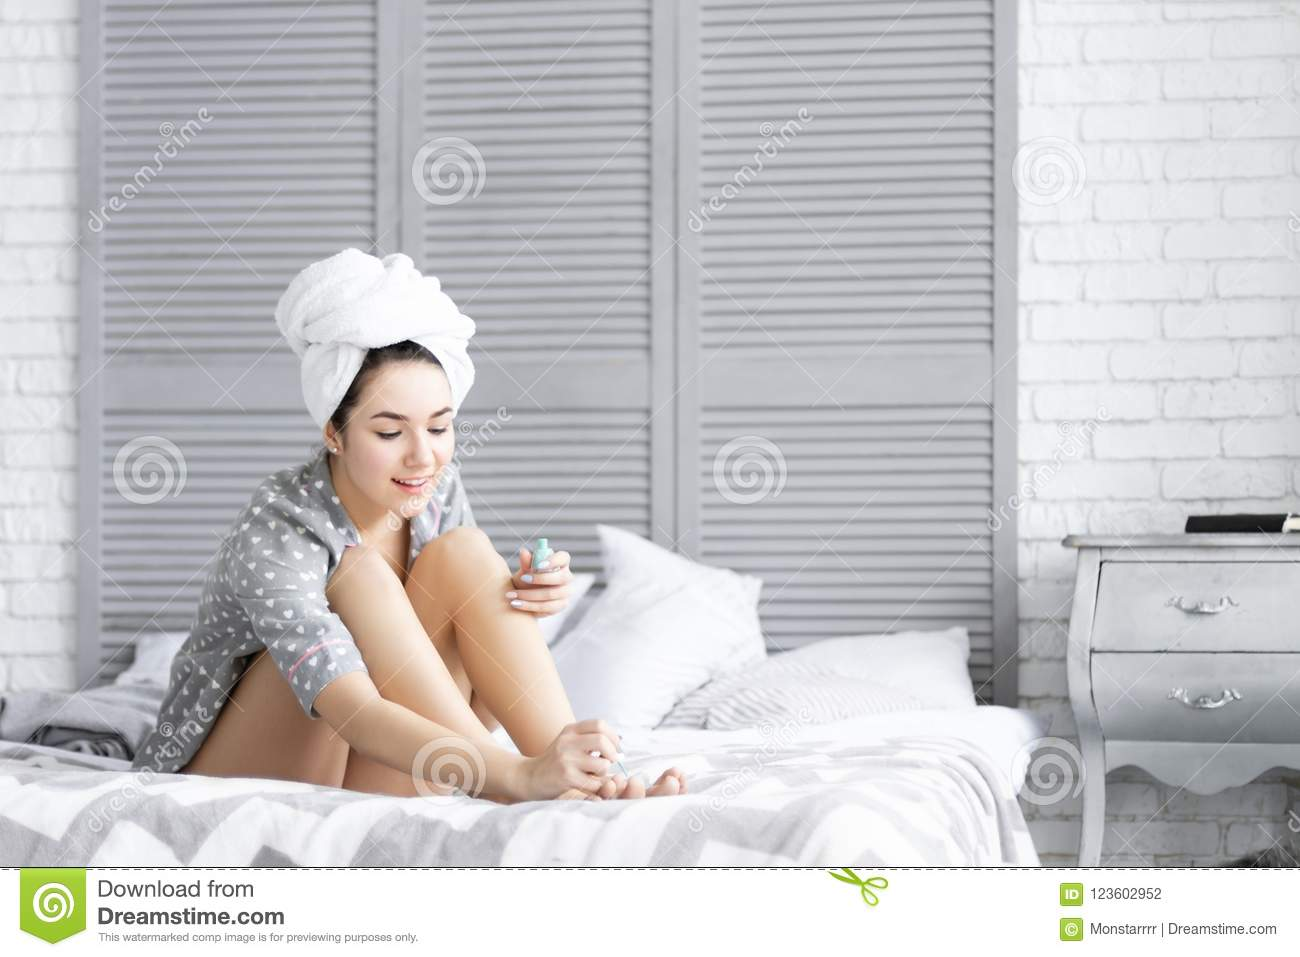 458f7f23efed79 Cute brunette woman female girl with curly hair wear grey pajamas sleepwear  with hearts sitting on the bed after shower with towel over head painting  her ...